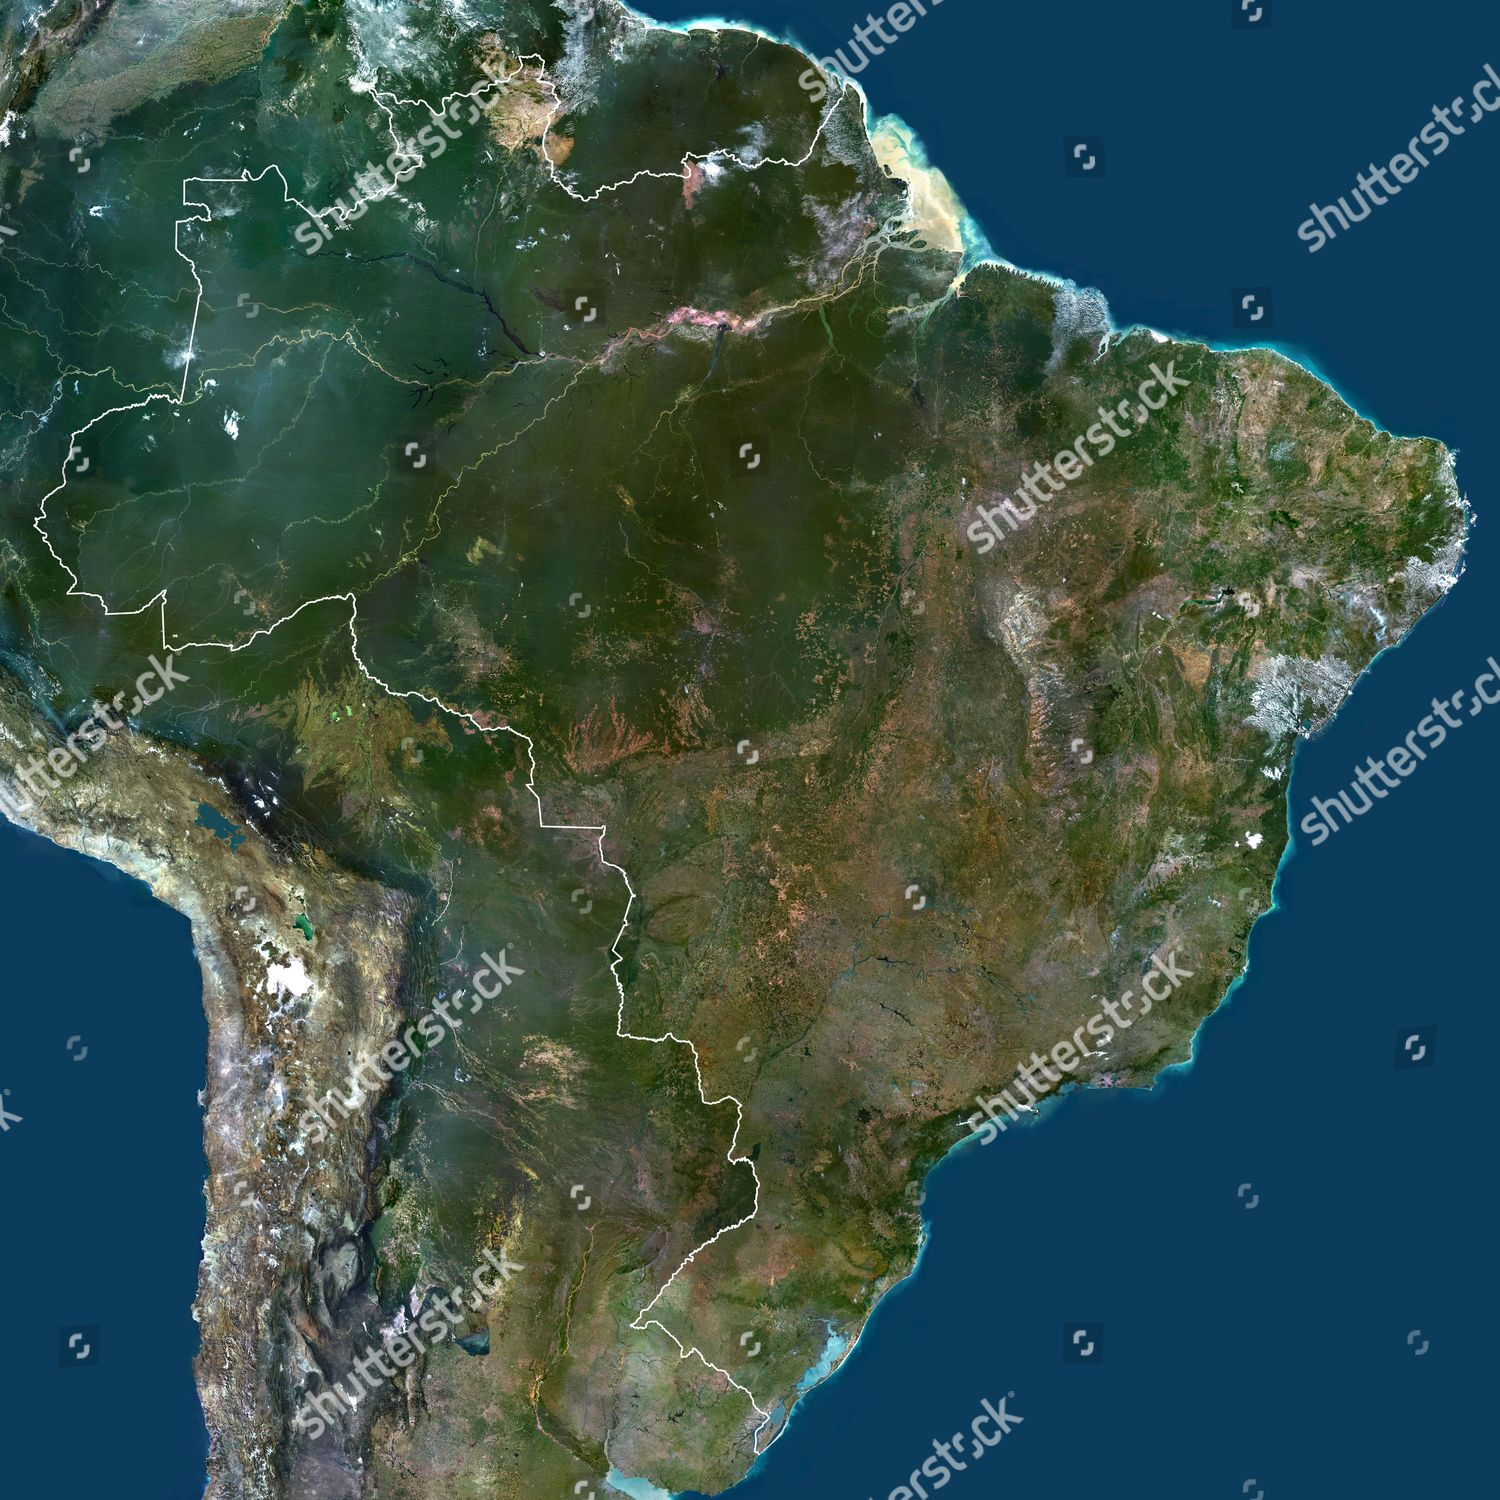 zil South America True Colour Satellite Image Editorial ... on hd map of south america, precipitation of south america, labeled map of south america, physical features of south america, statistics of south america, google maps south america, physical map of south america, thematic map of south america, large map of south america, satellite maps of homes, north america, map of africa and south america, satellite maps of usa, complete map of south america, blank outline map of south america, a blank map of south america, full map of south america, current map of south america, google earth south america, topographic map of south america,